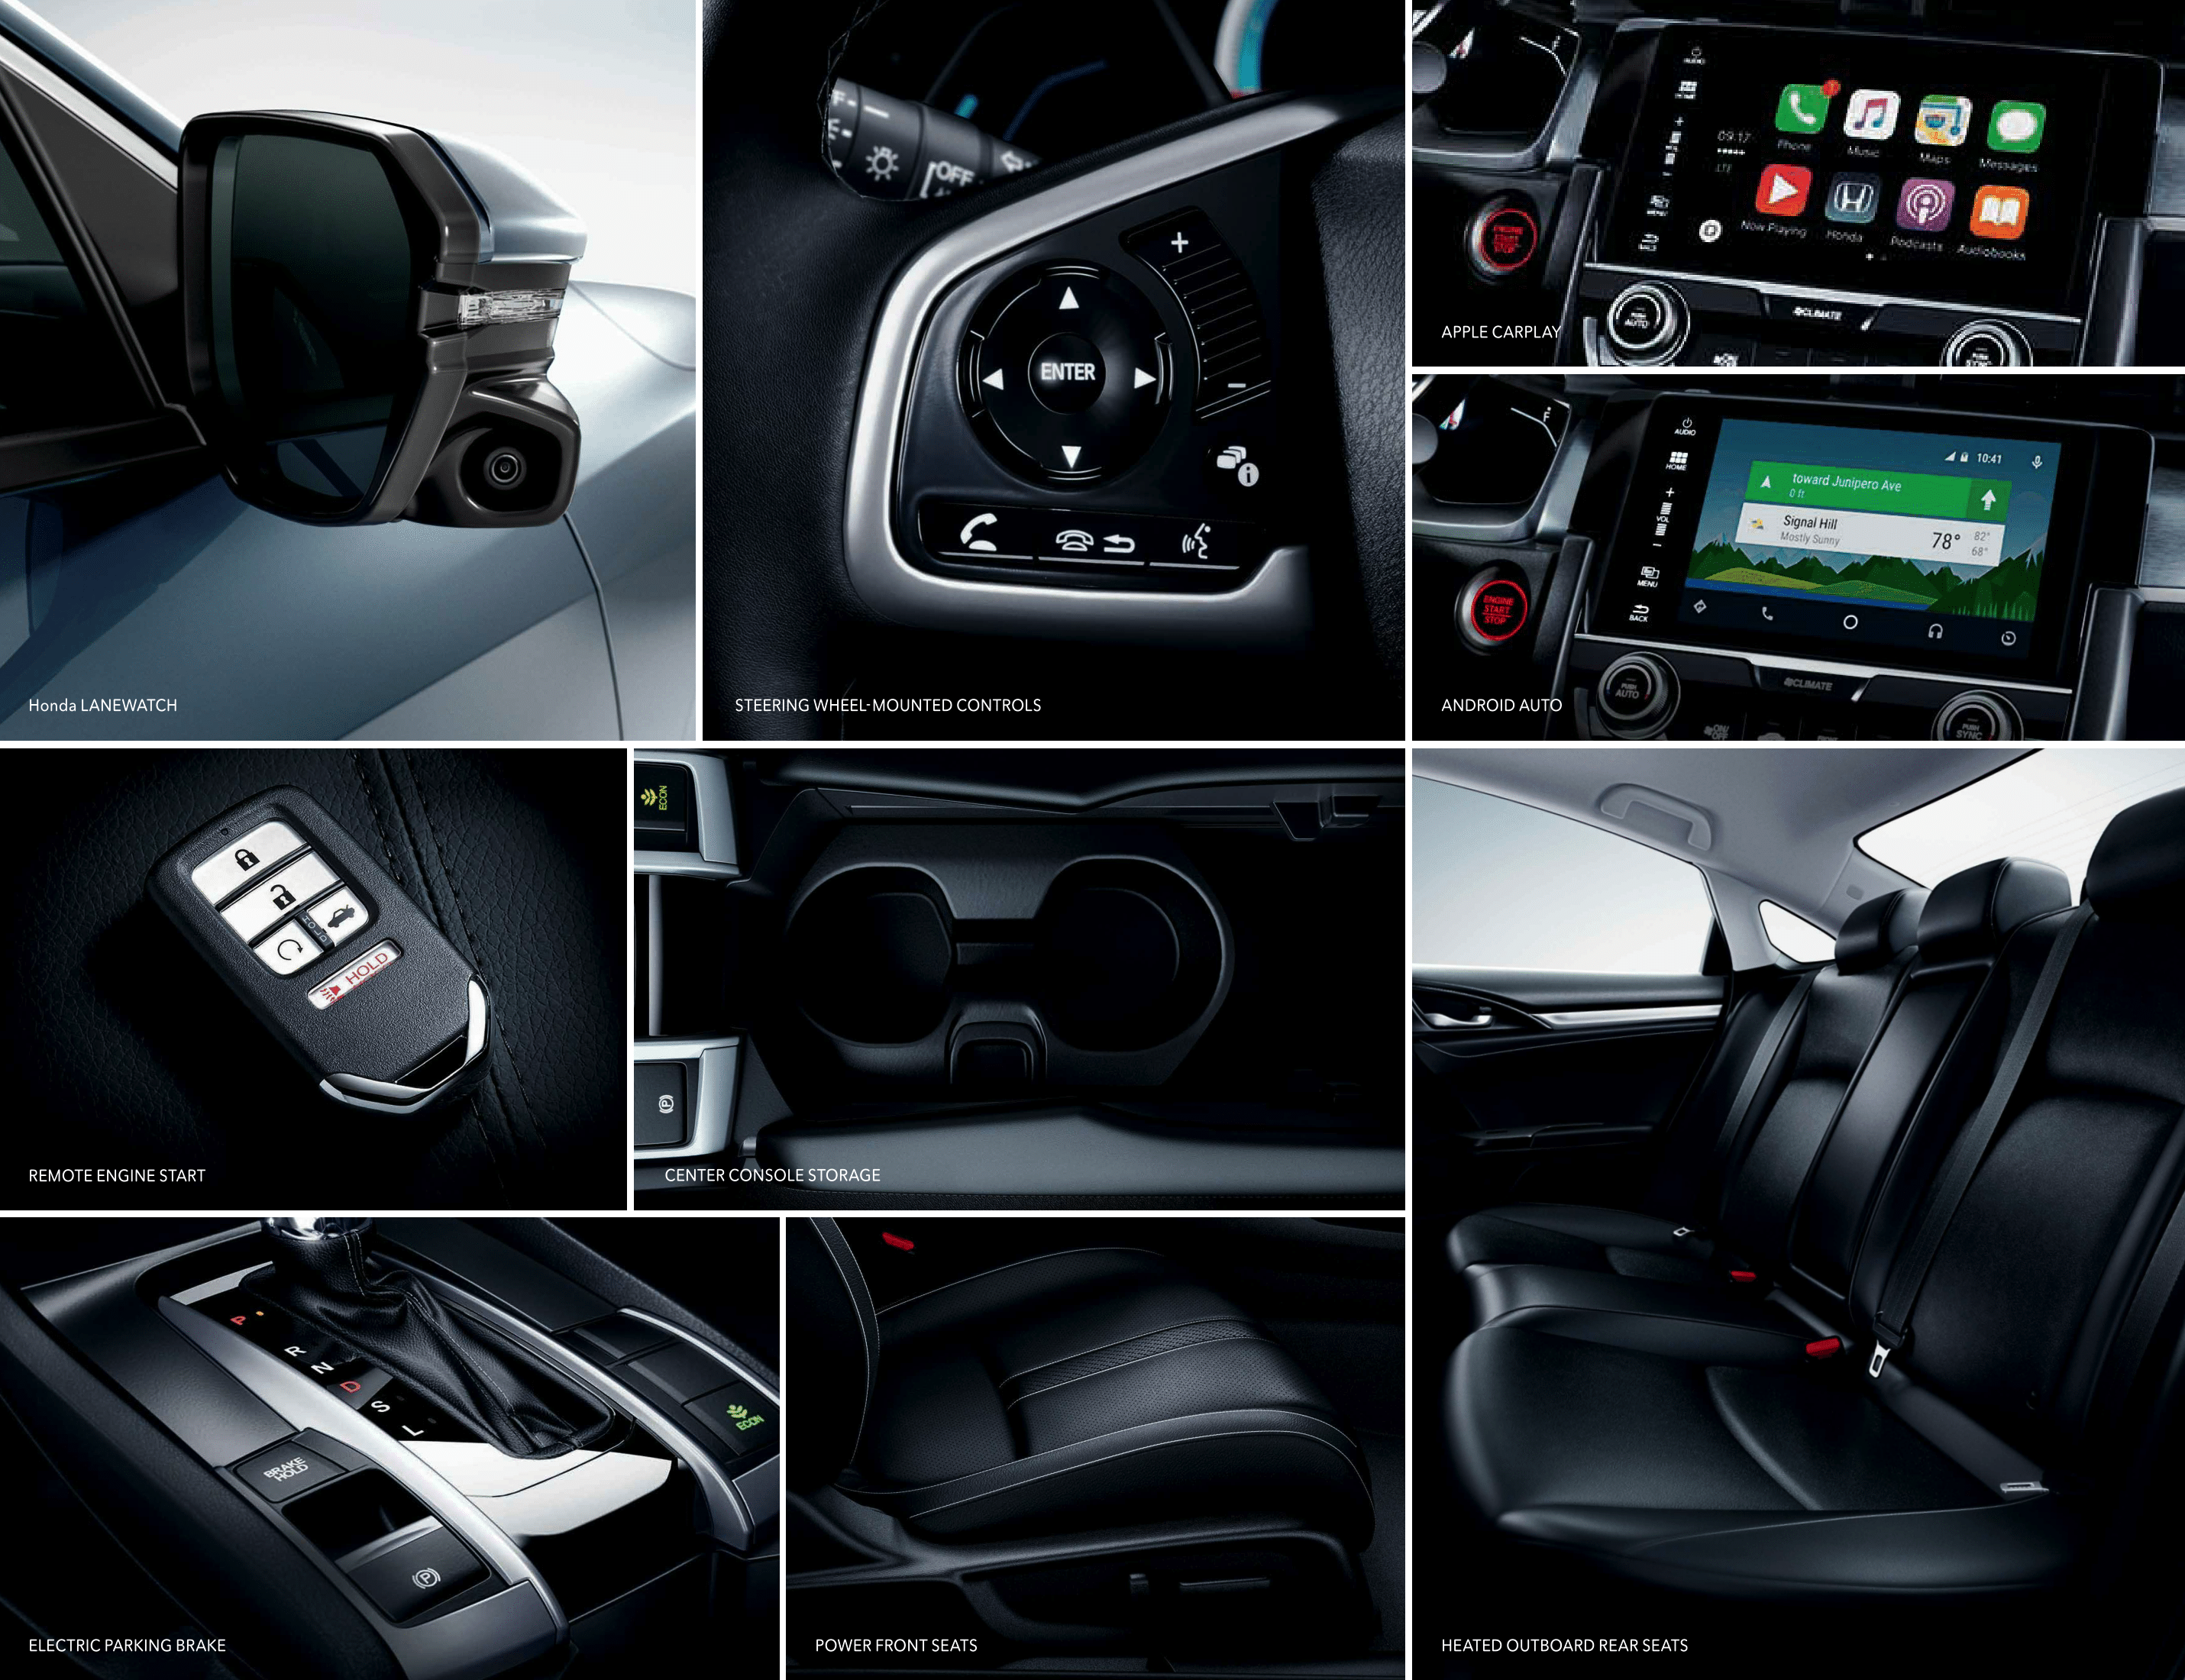 Grid View of many Interior Features of the 2017 Honda Civic